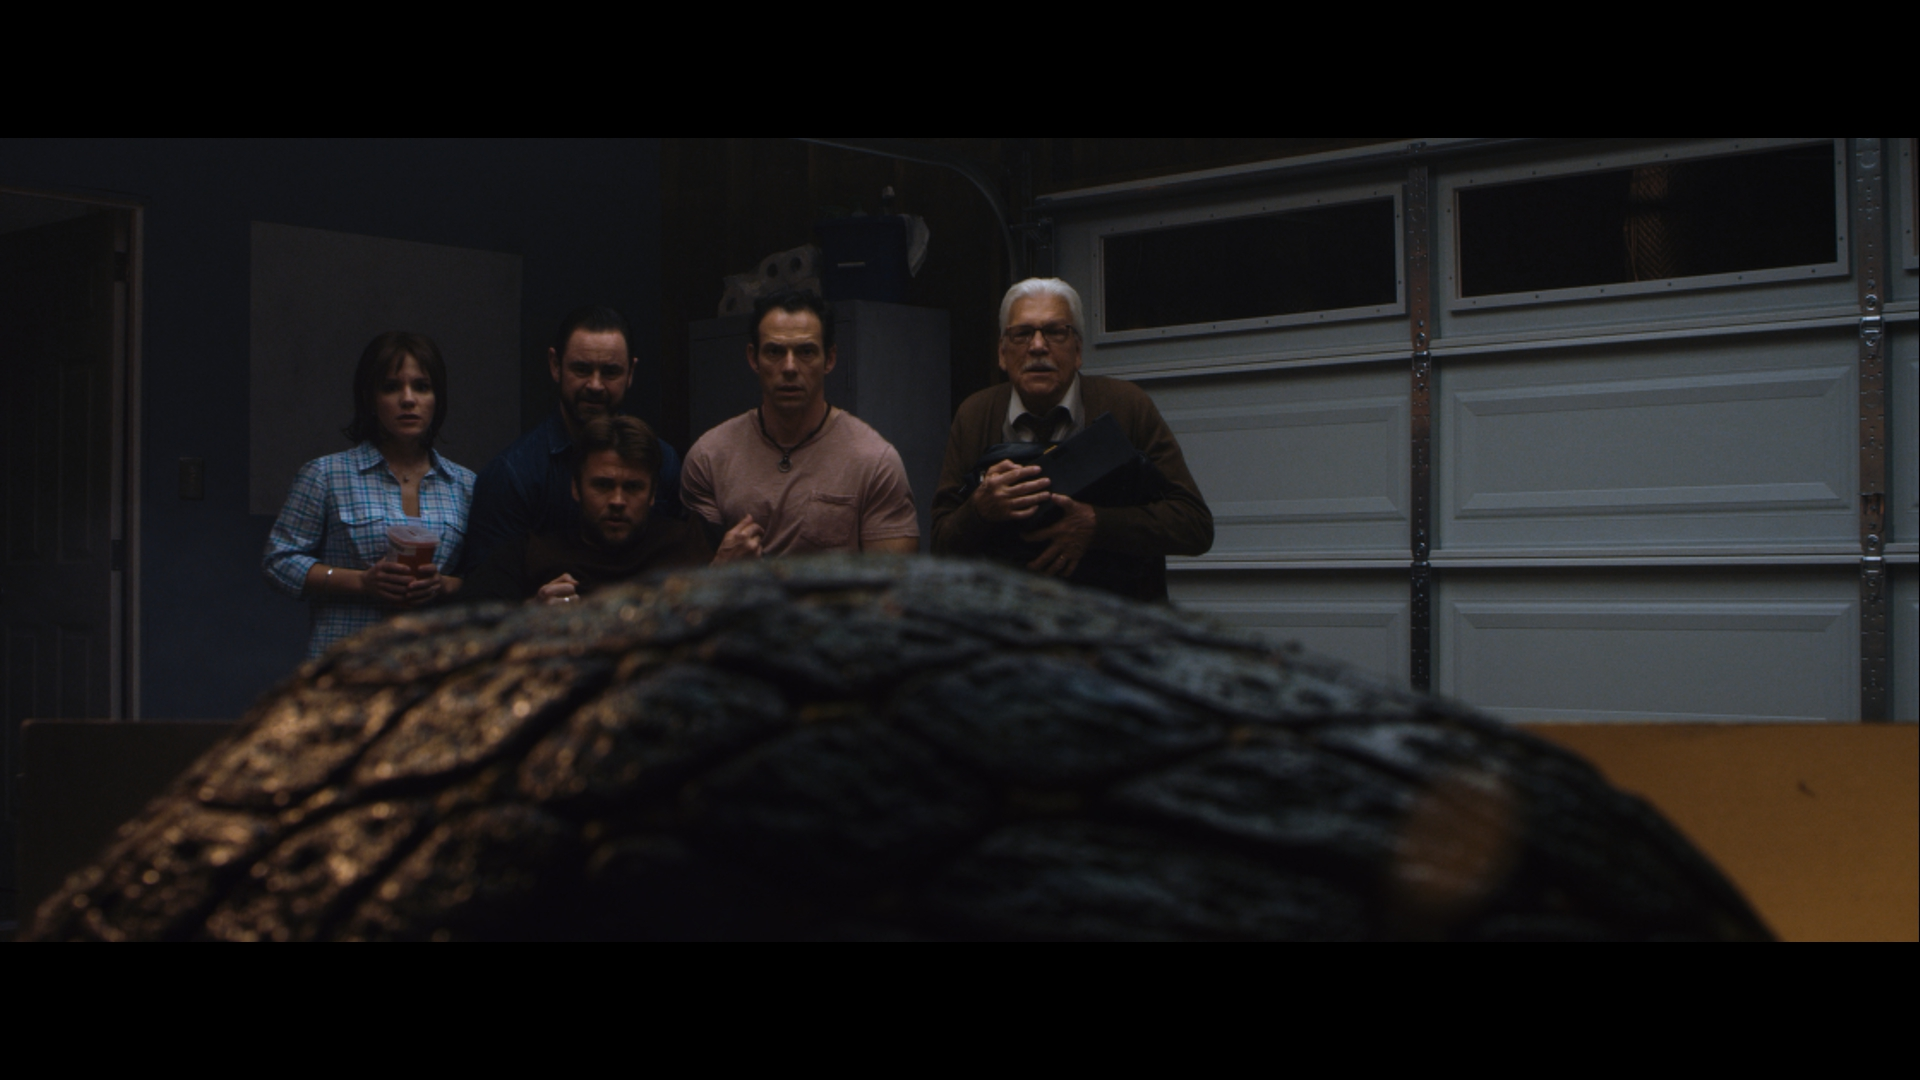 "Cheryl Texiera (""Terri""), Glenn Keogh (""Brent""), Luke Hemsworth (""Will""), Christopher Showerman (""Jonathan"") and Tom Atkins (""Prof. Westlake"") watch as their otherworldly visitor grows in size."